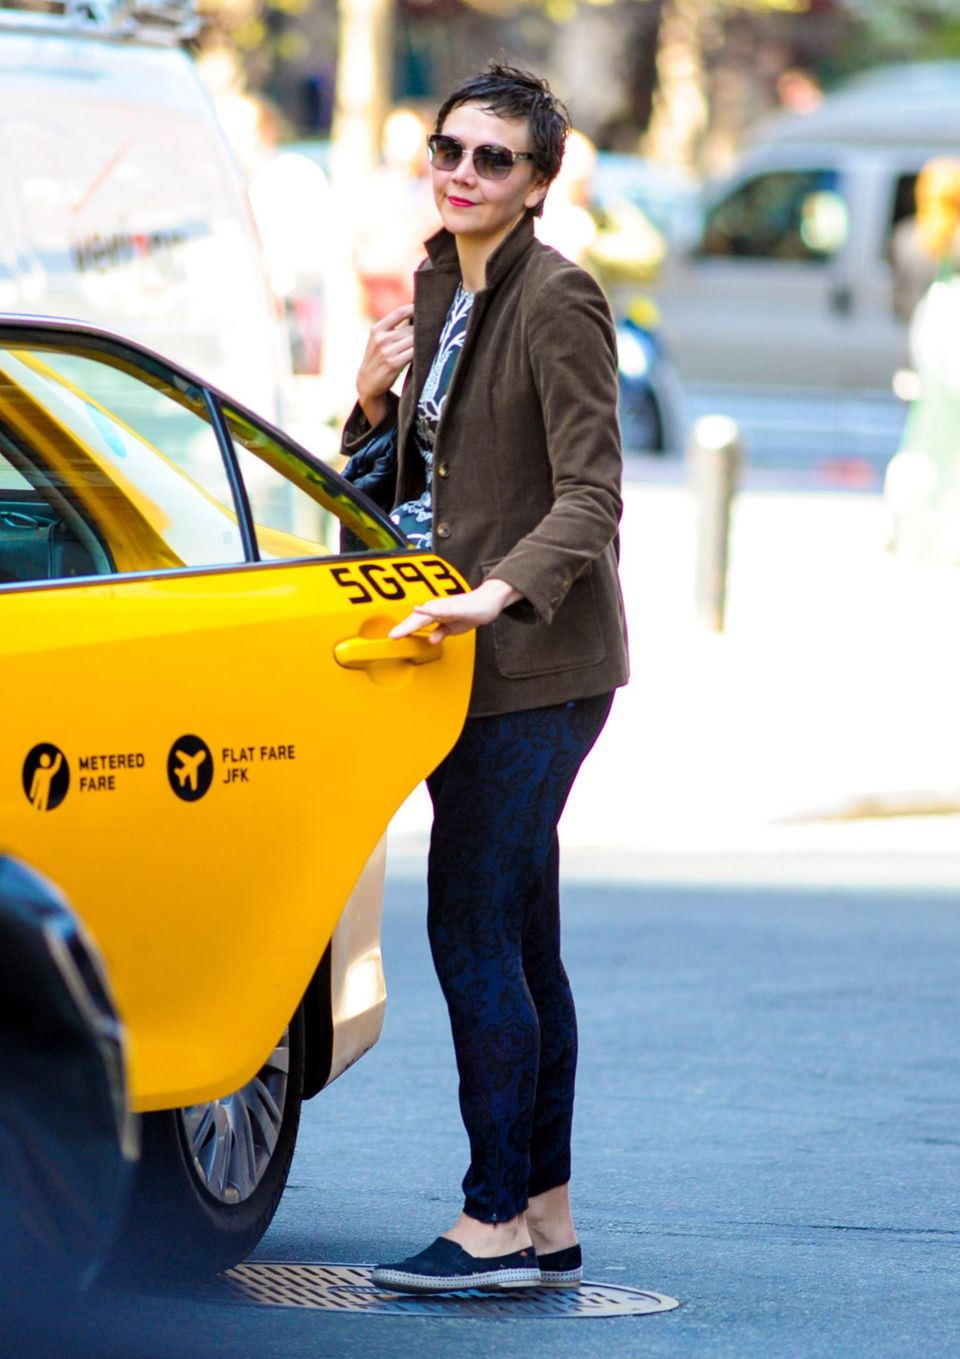 23. April 2013: Gut gelaunt steigt Maggie Gyllenhaal in Tribeca in ein Taxi.